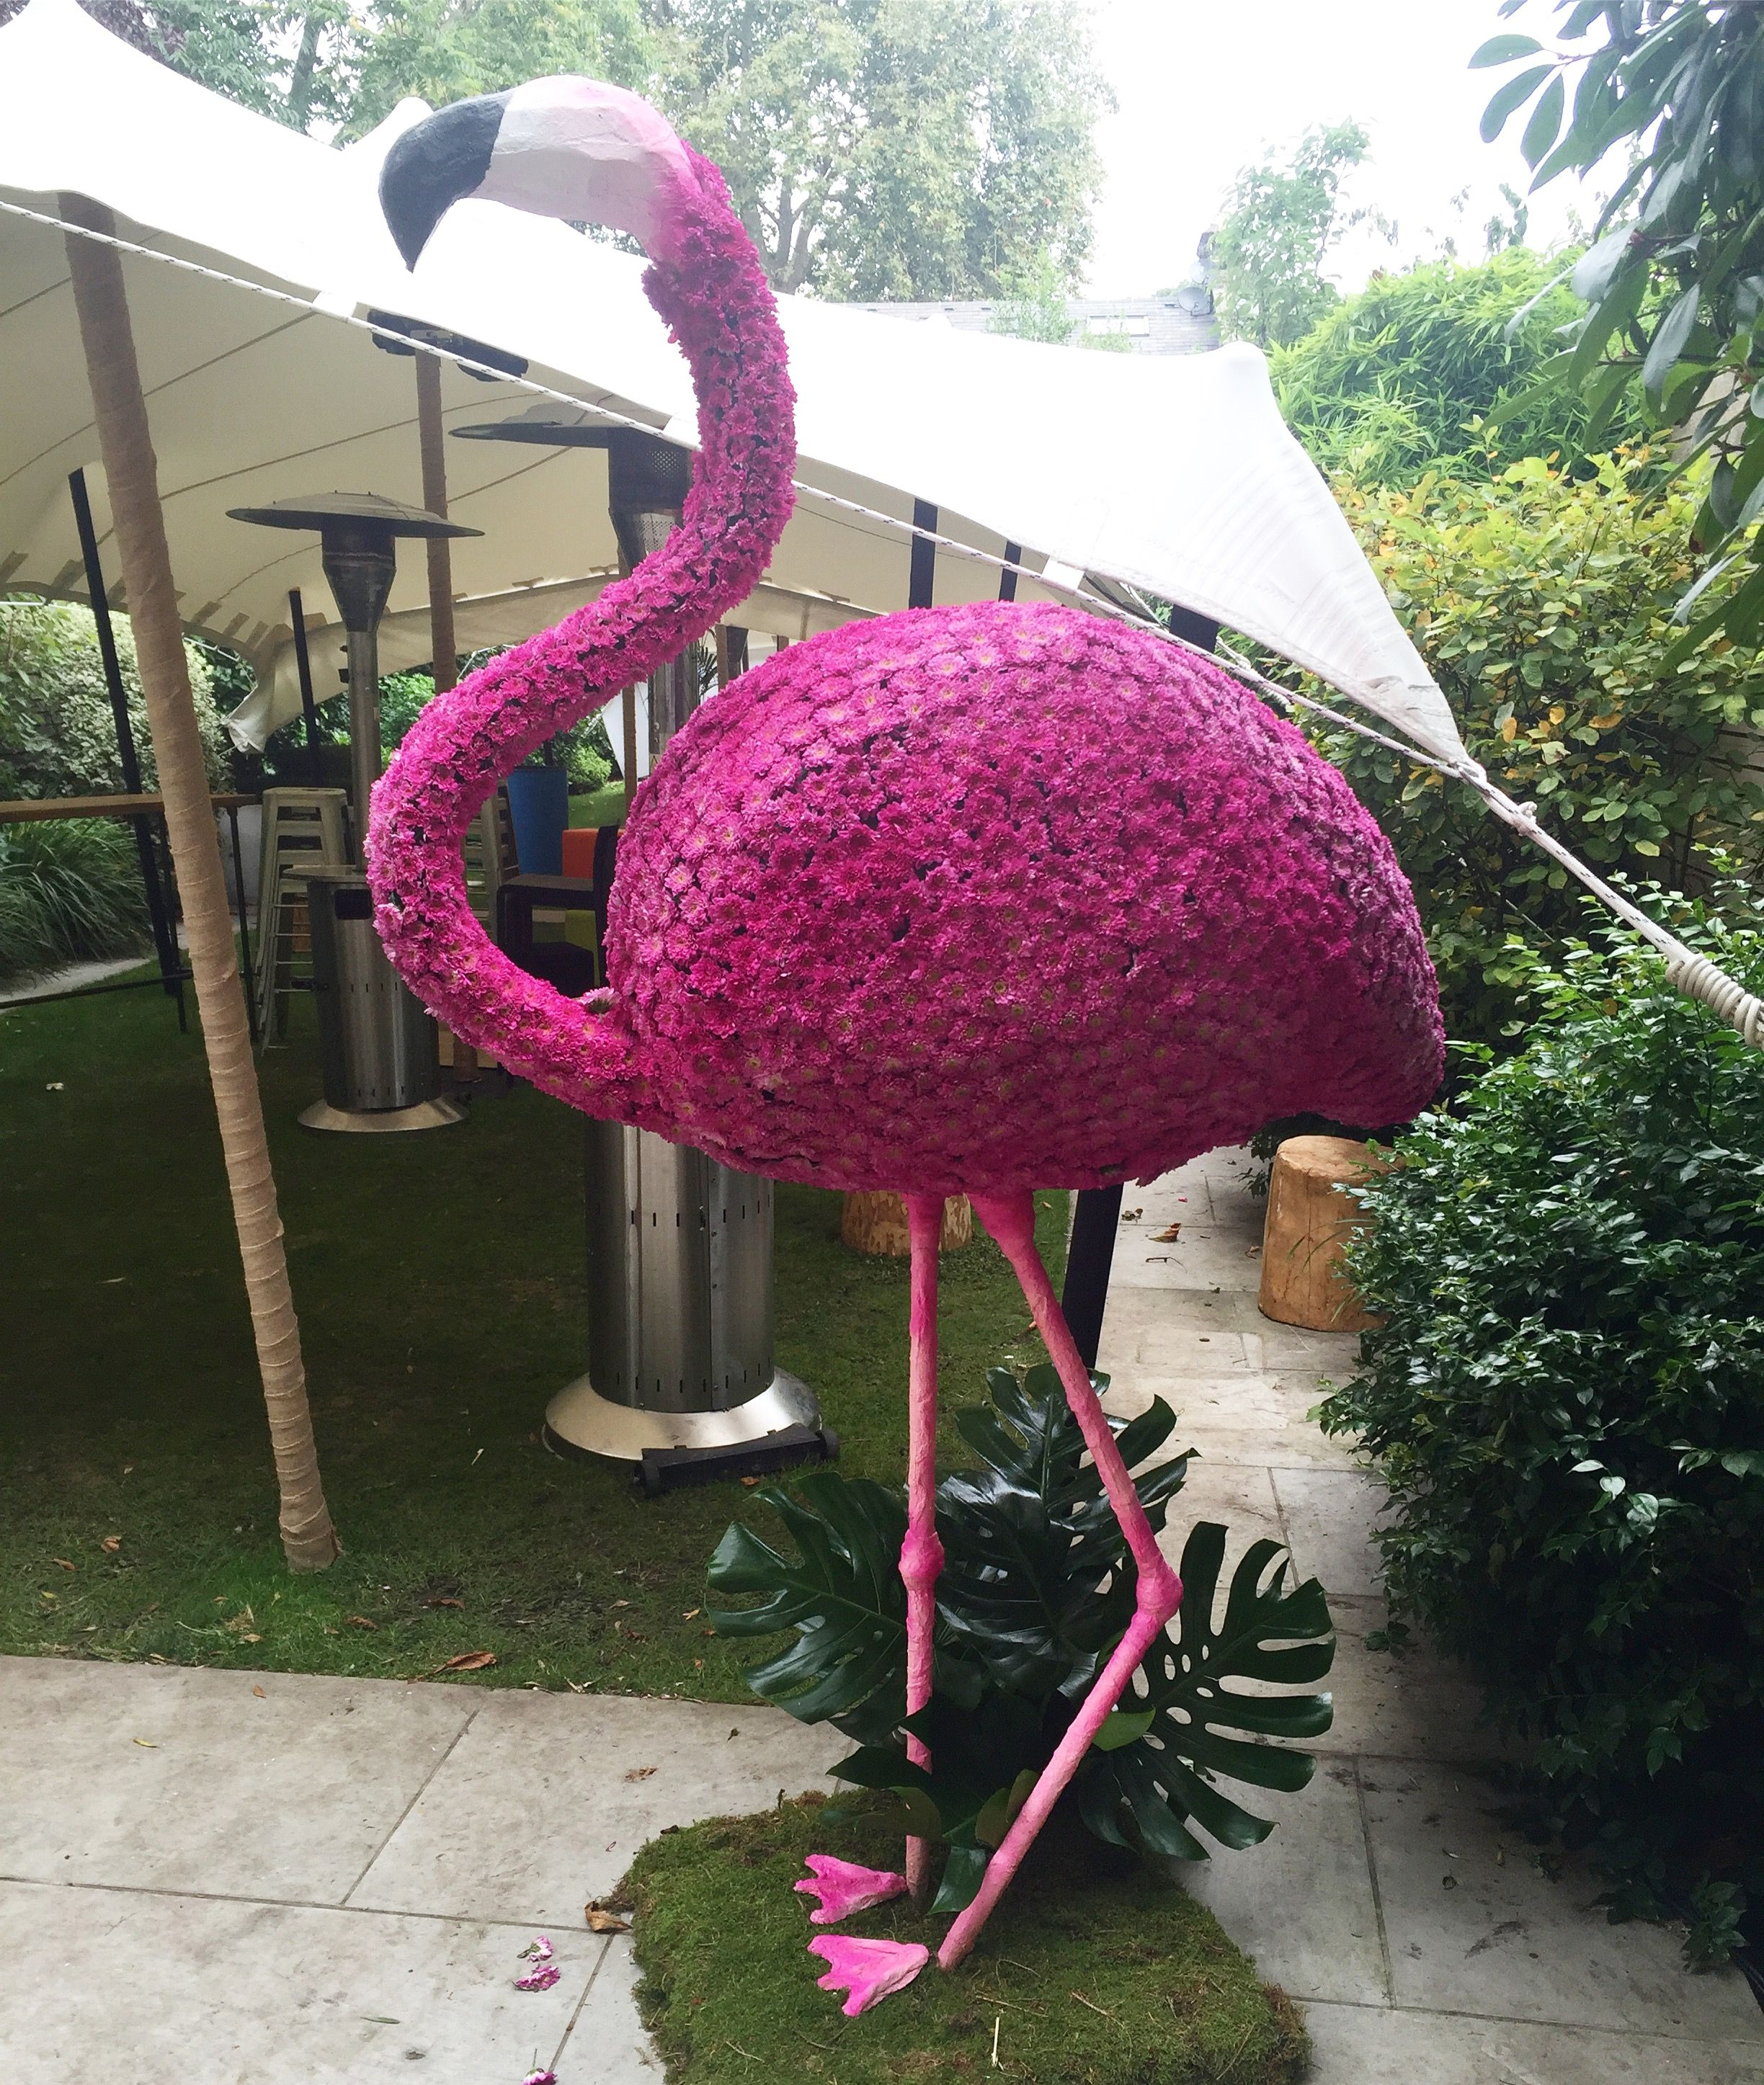 Pink flamingo flower sculpture by boutique blooms floral design boutique blooms floral design styling based in surrey uk mightylinksfo Images